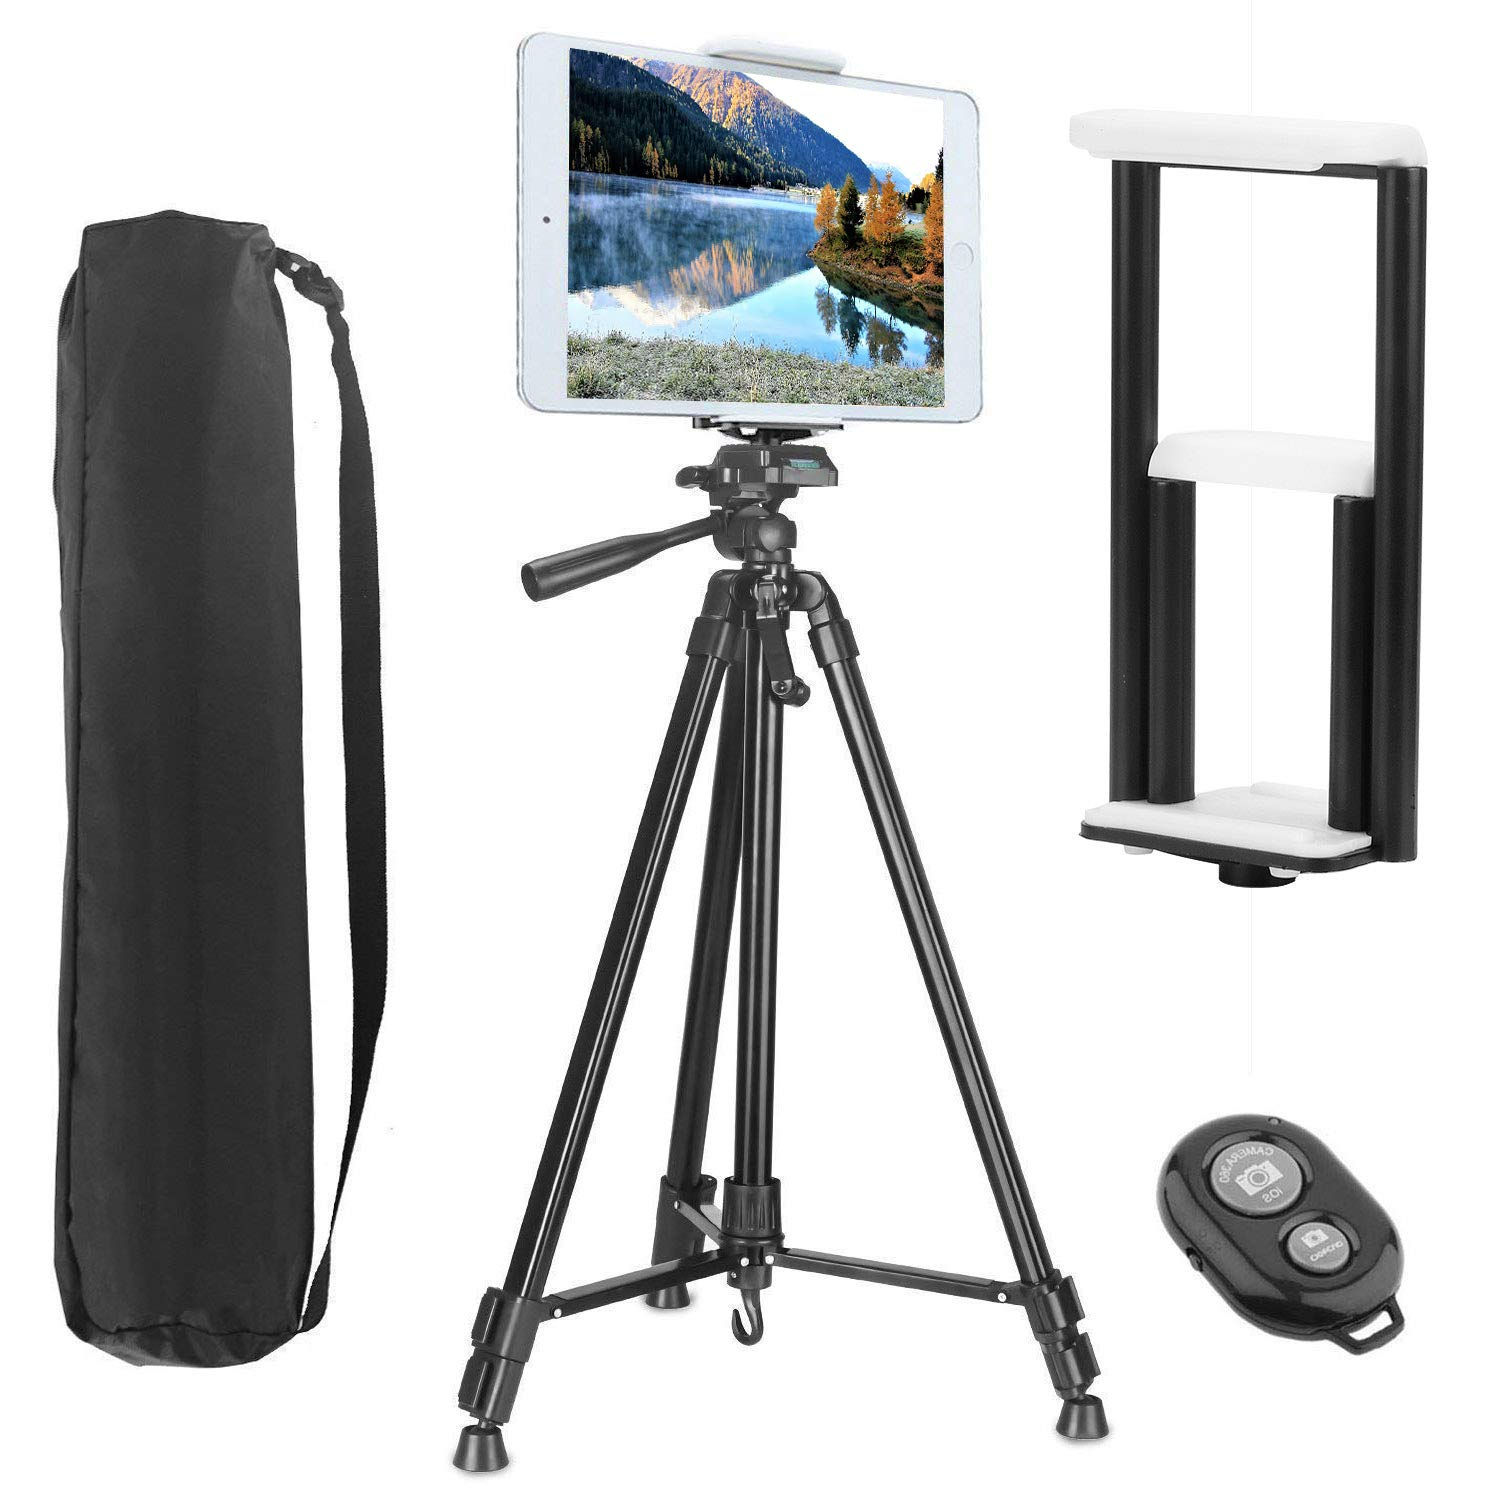 Tripod for Tablet and Phone, PEYOU Upgraded 62' Aluminum Camera Tripod + [2 In 1] Tablet & Phone Holder Mount With Wireless Bluetooth Remote Shutter For iPhone XS/XS Max/X 8/8 Plus 7/7 Plus 6/6 Plus SE, For Samsung Galaxy S9/S9 Plus S8/S8 Plus S7/S7 Edge S